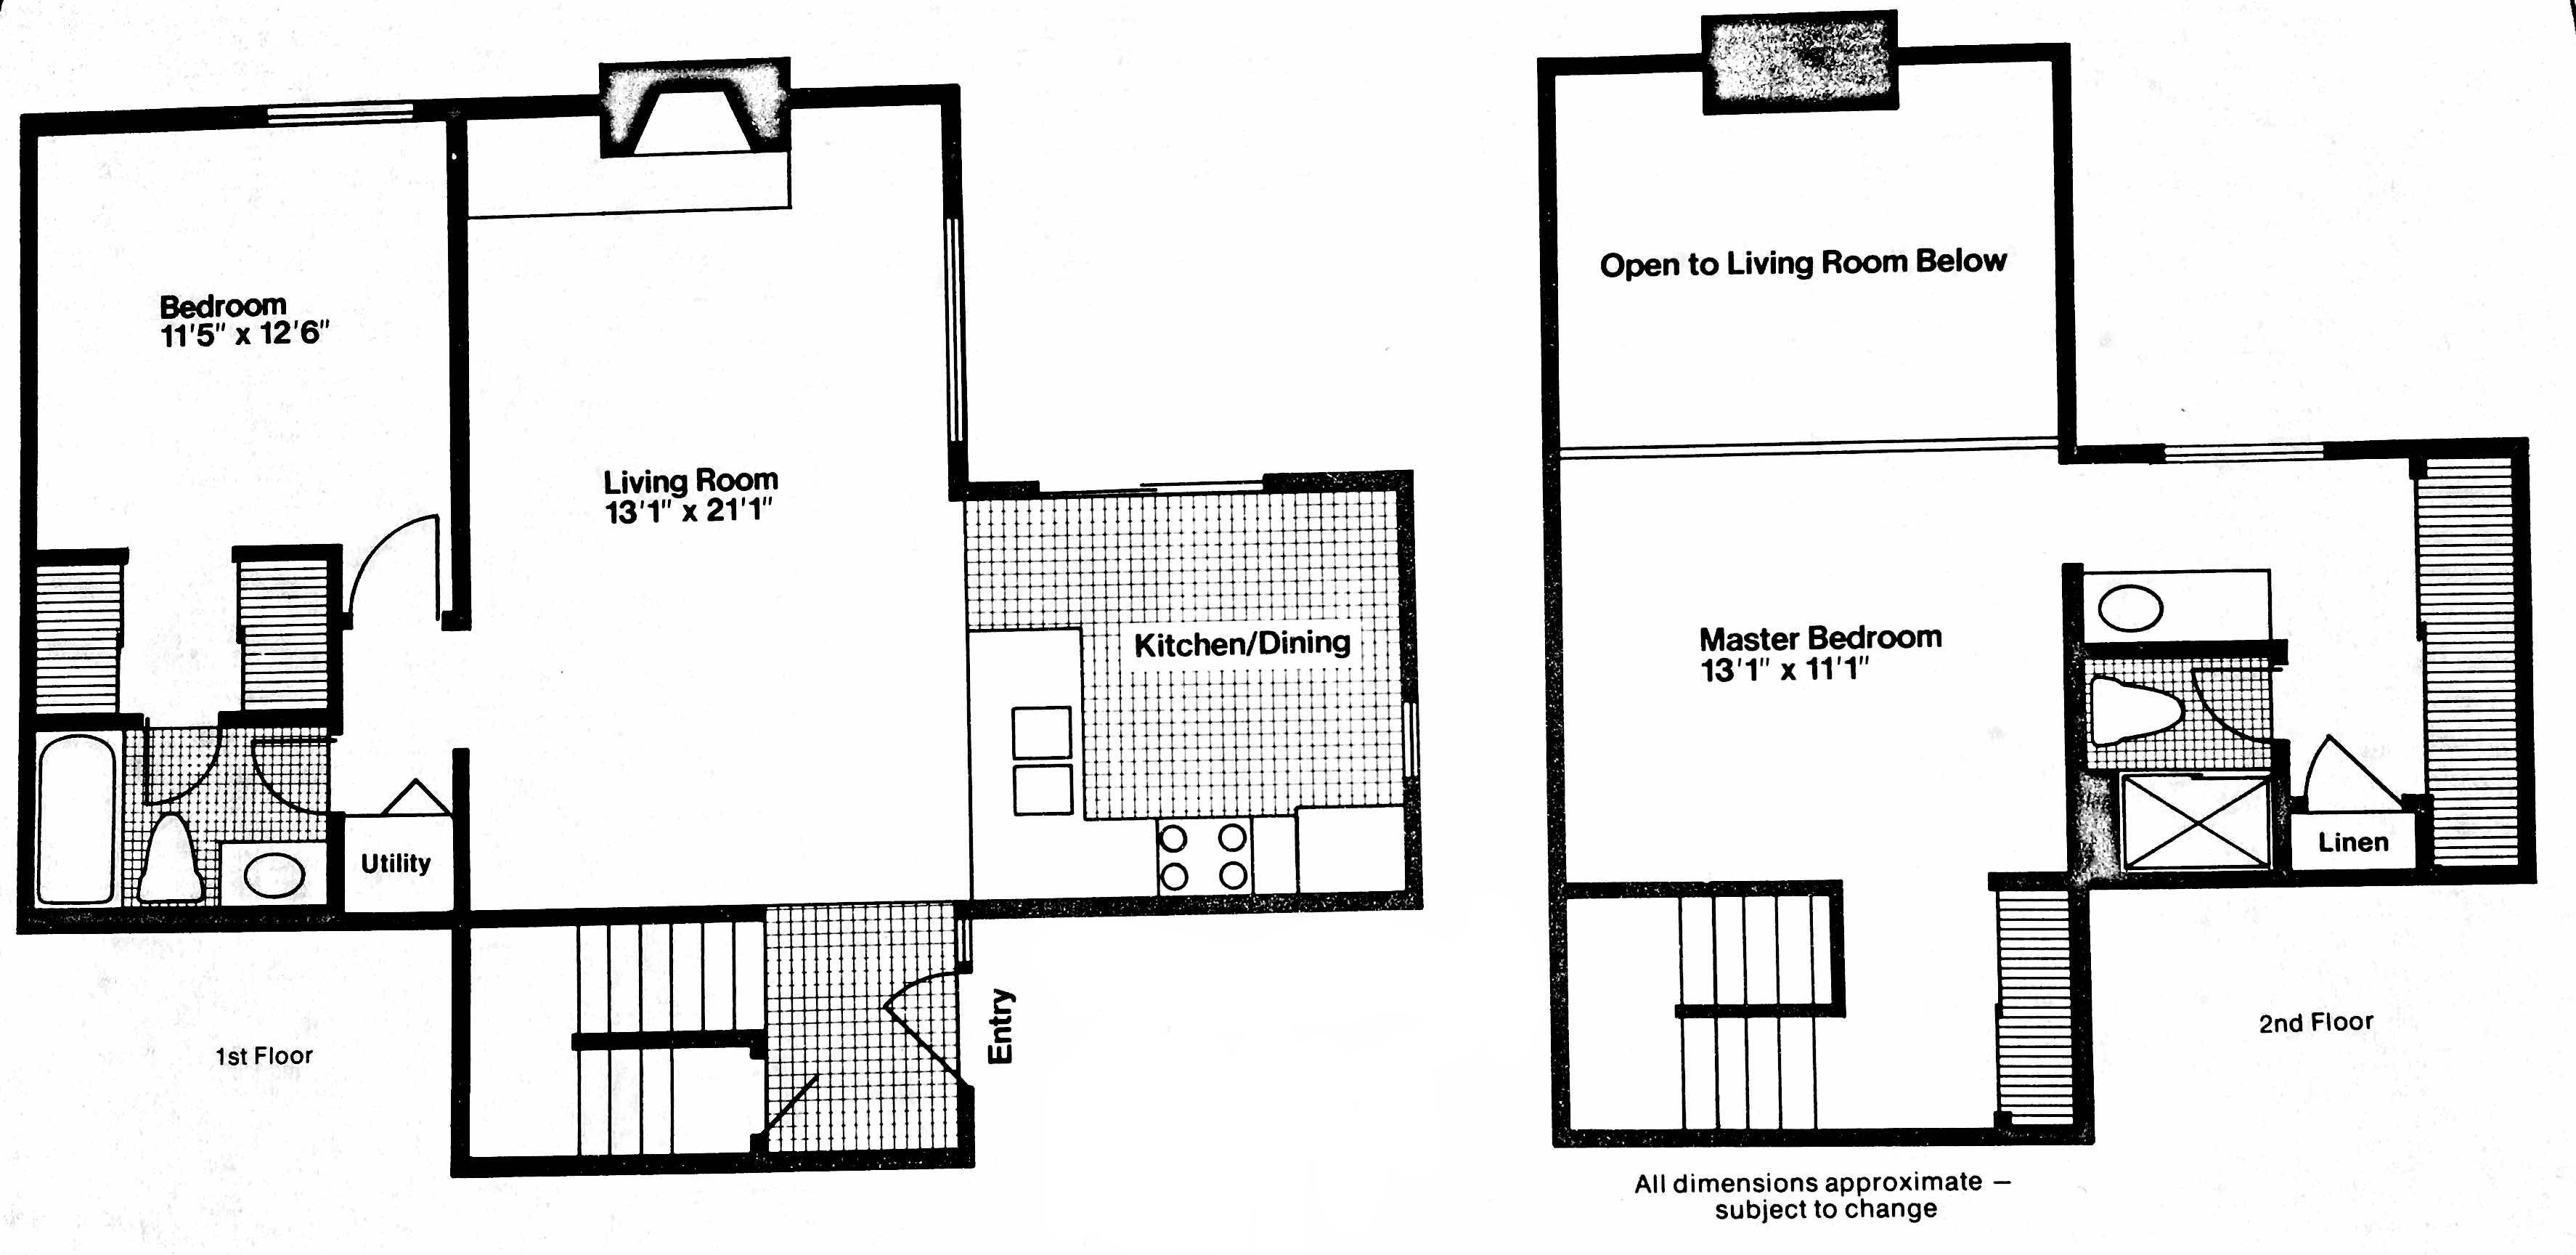 Homes By Marco Floor Plans: Birch Model In The Heather Ridge Subdivision In Gurnee